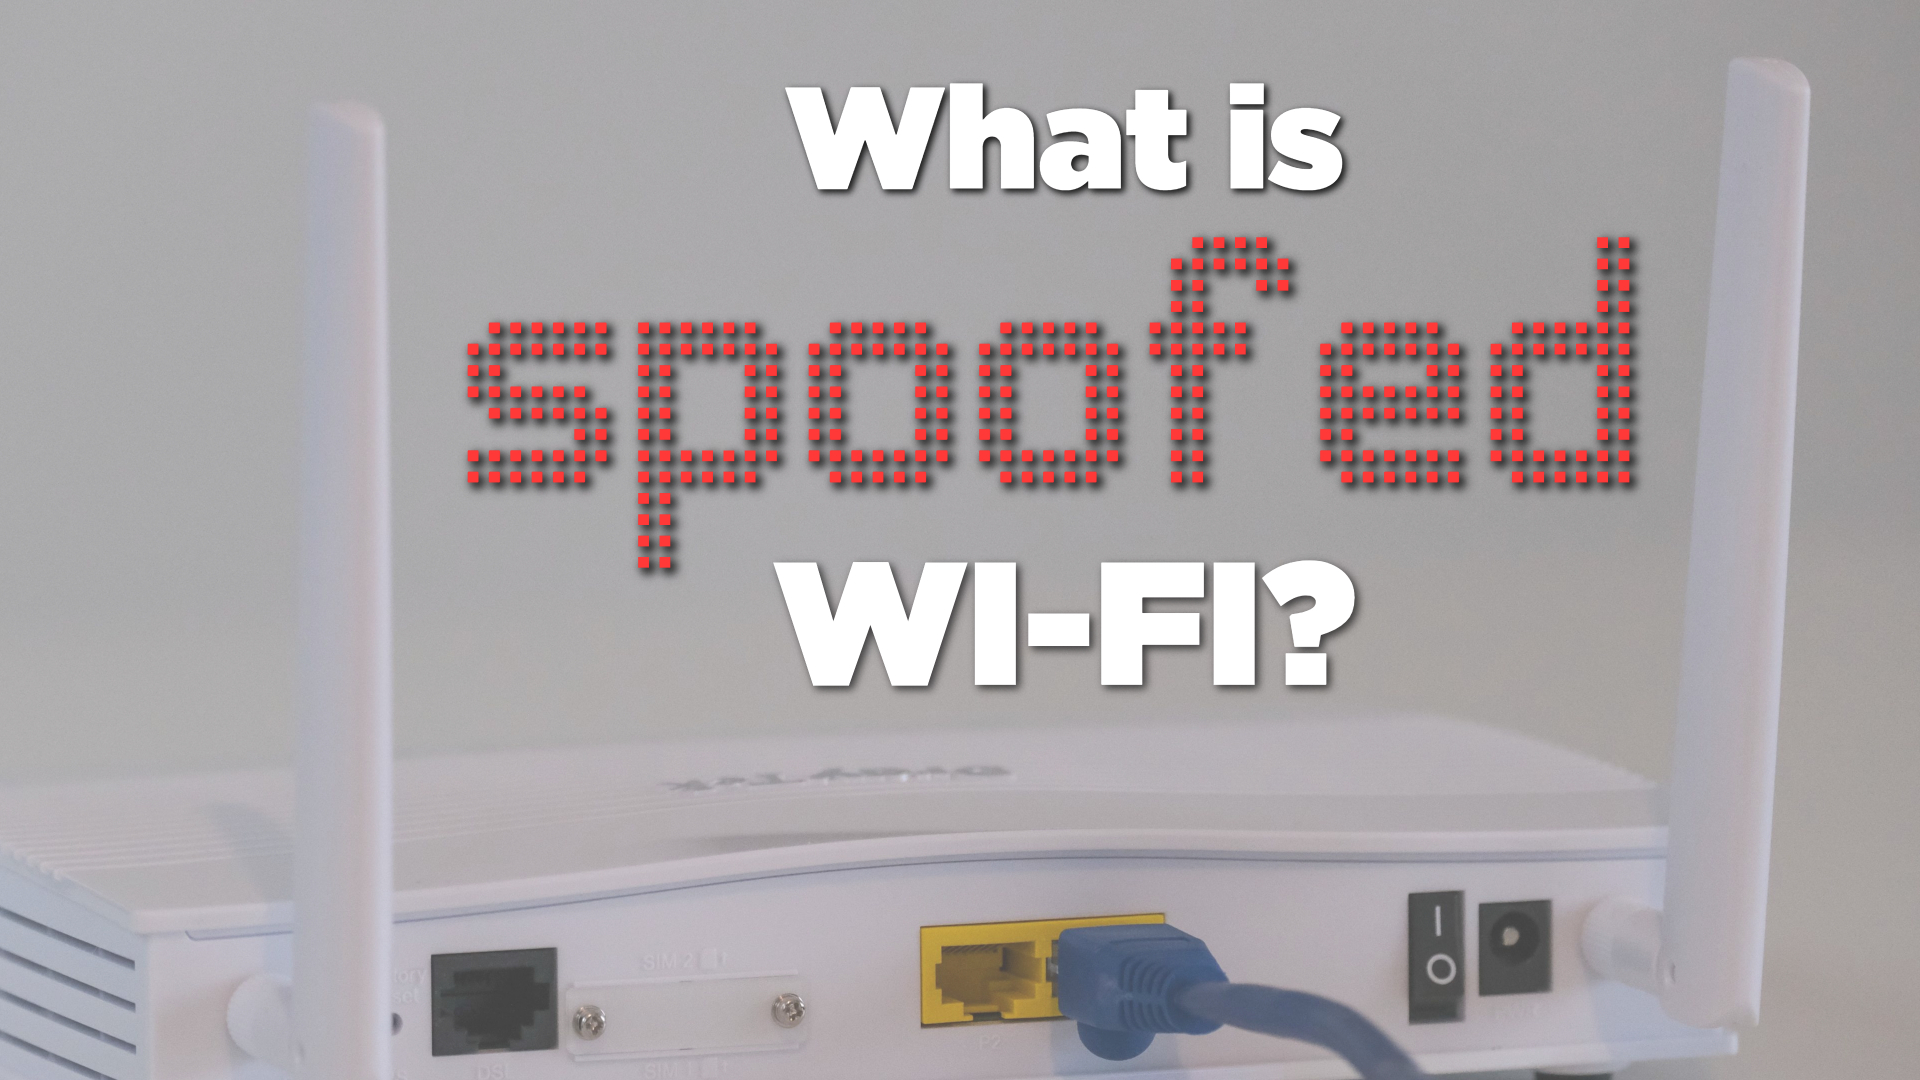 What is spoofed Wi-Fi?